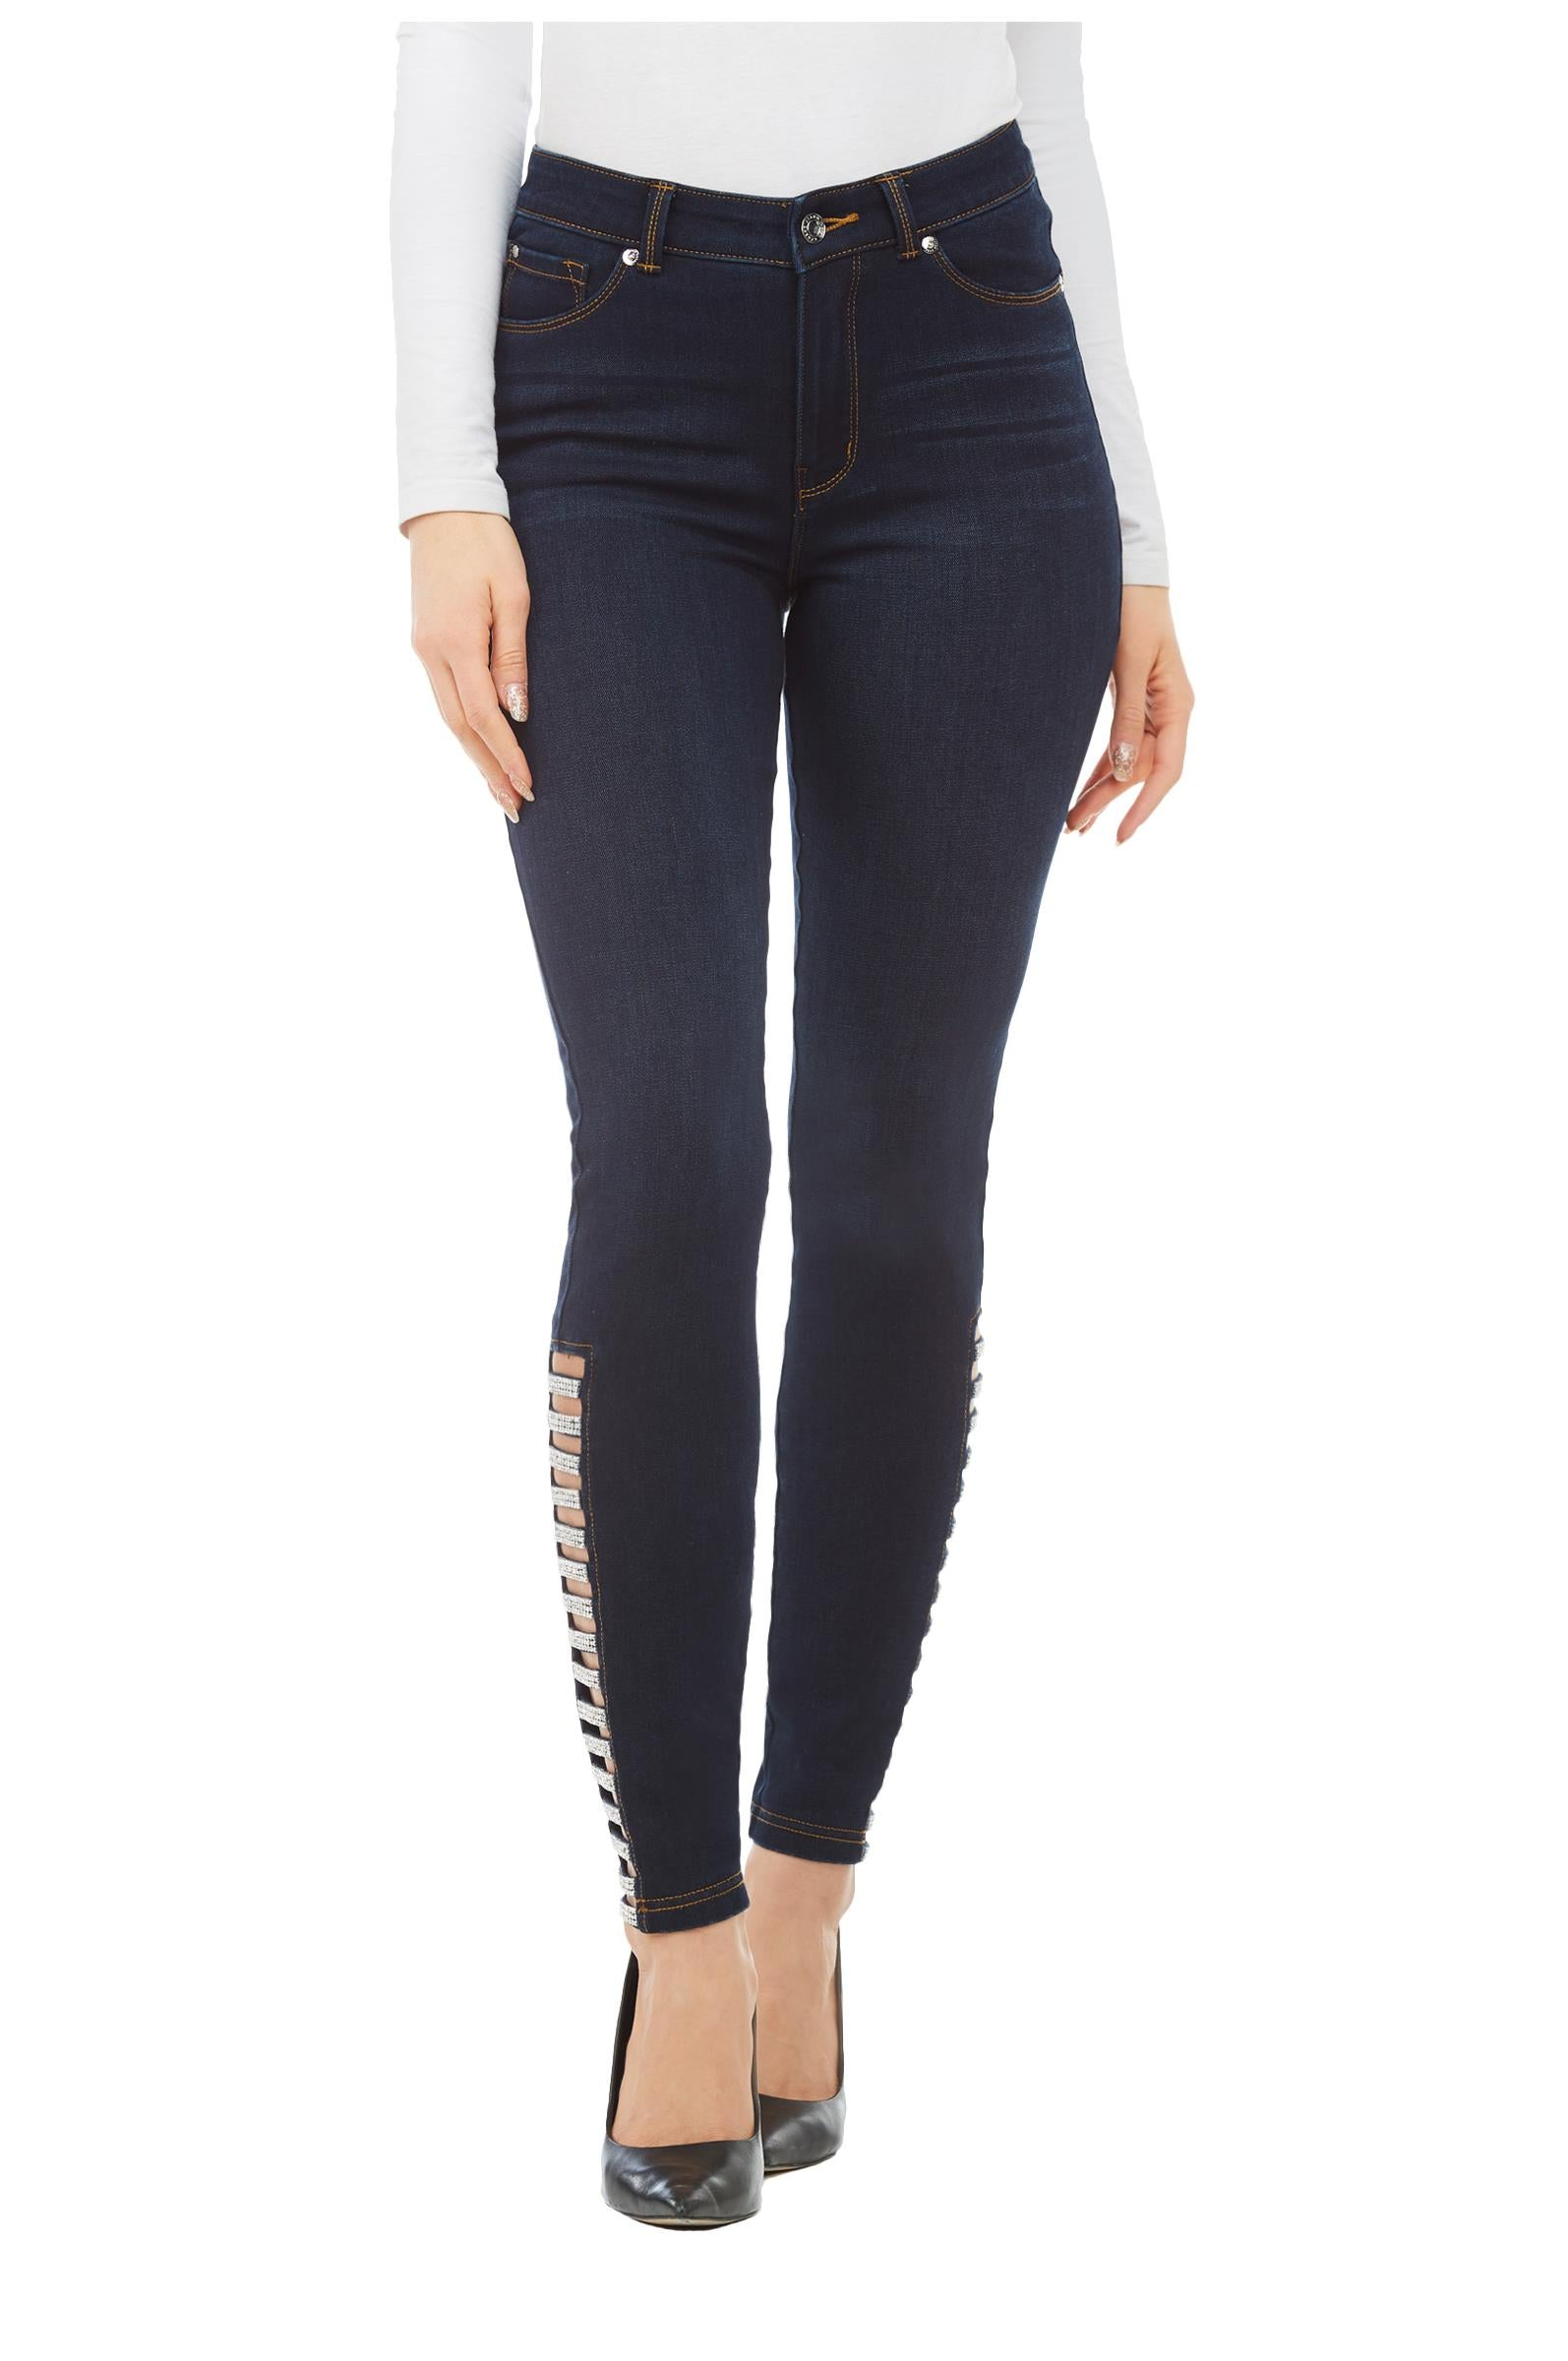 Front view woman wearing Peter Nygard denim skinny jeans with side rhinestone ladder at hemline